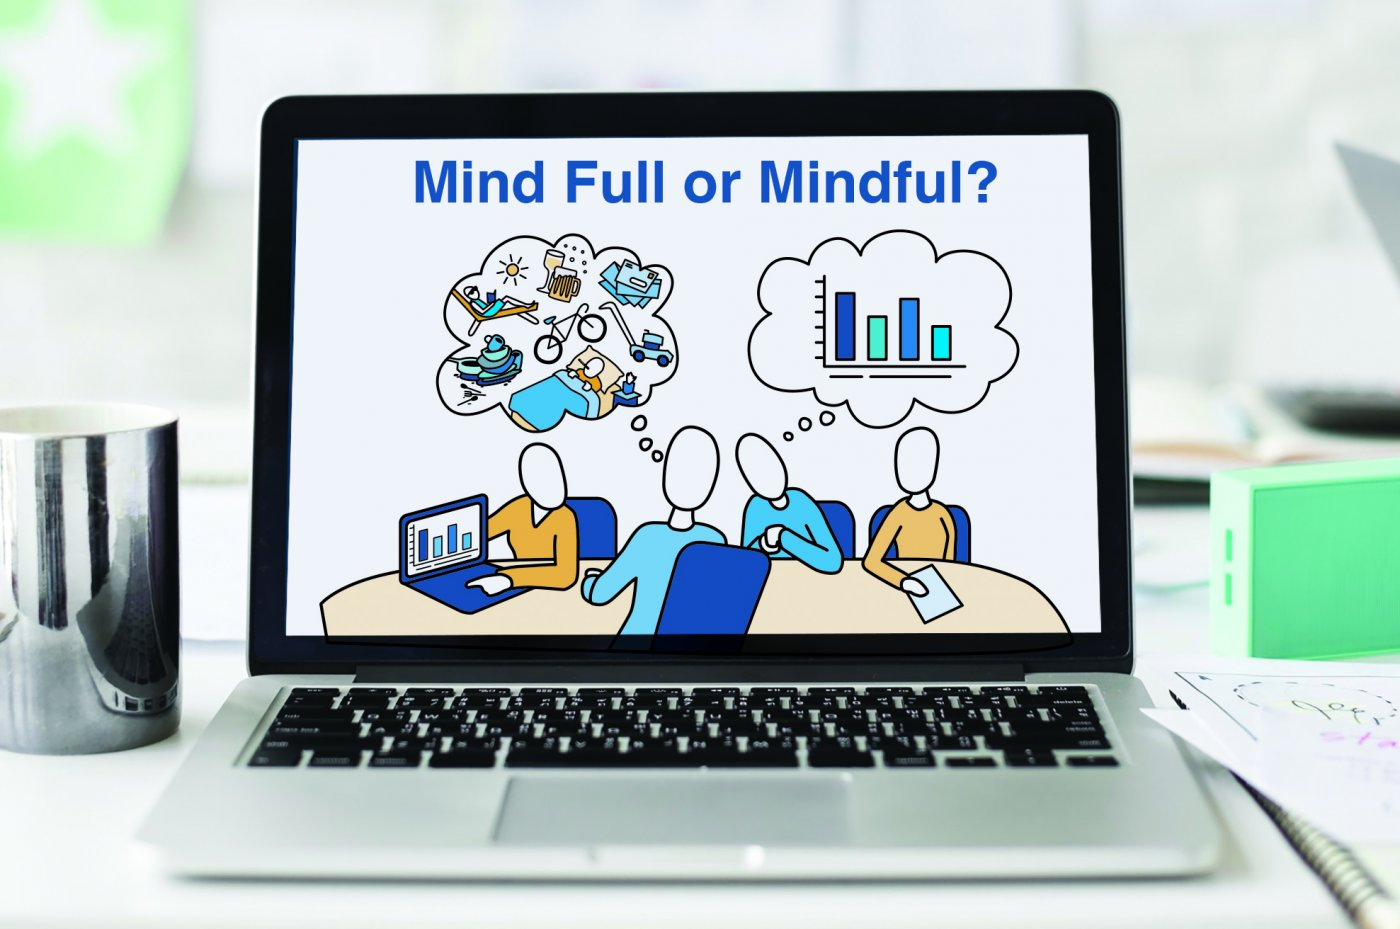 Mind Full or Mindful mindfulness illustration on computer